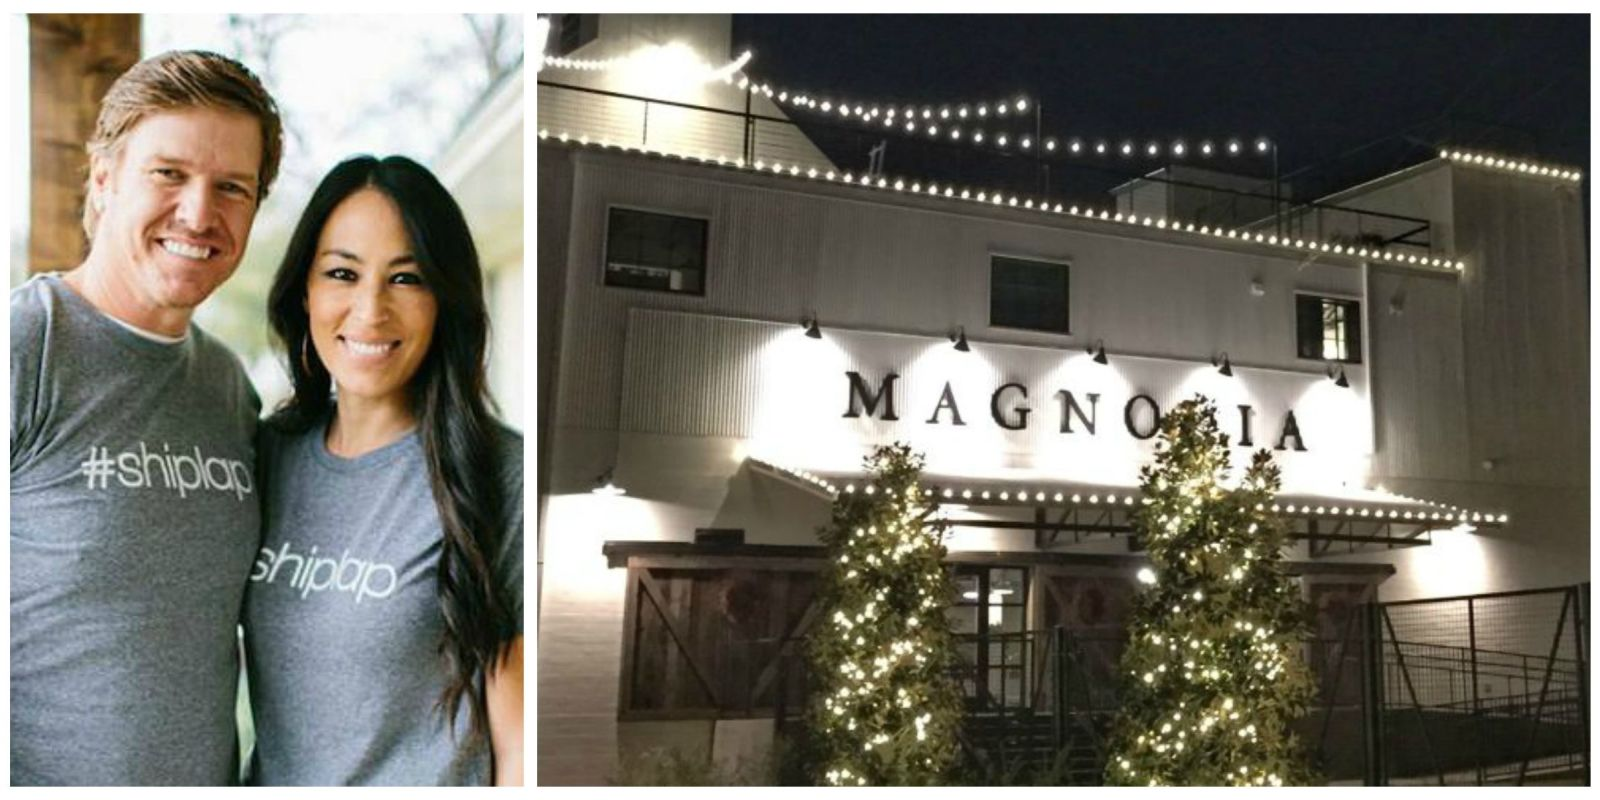 Chip and joanna gaines magnolia market 10 things you need to know